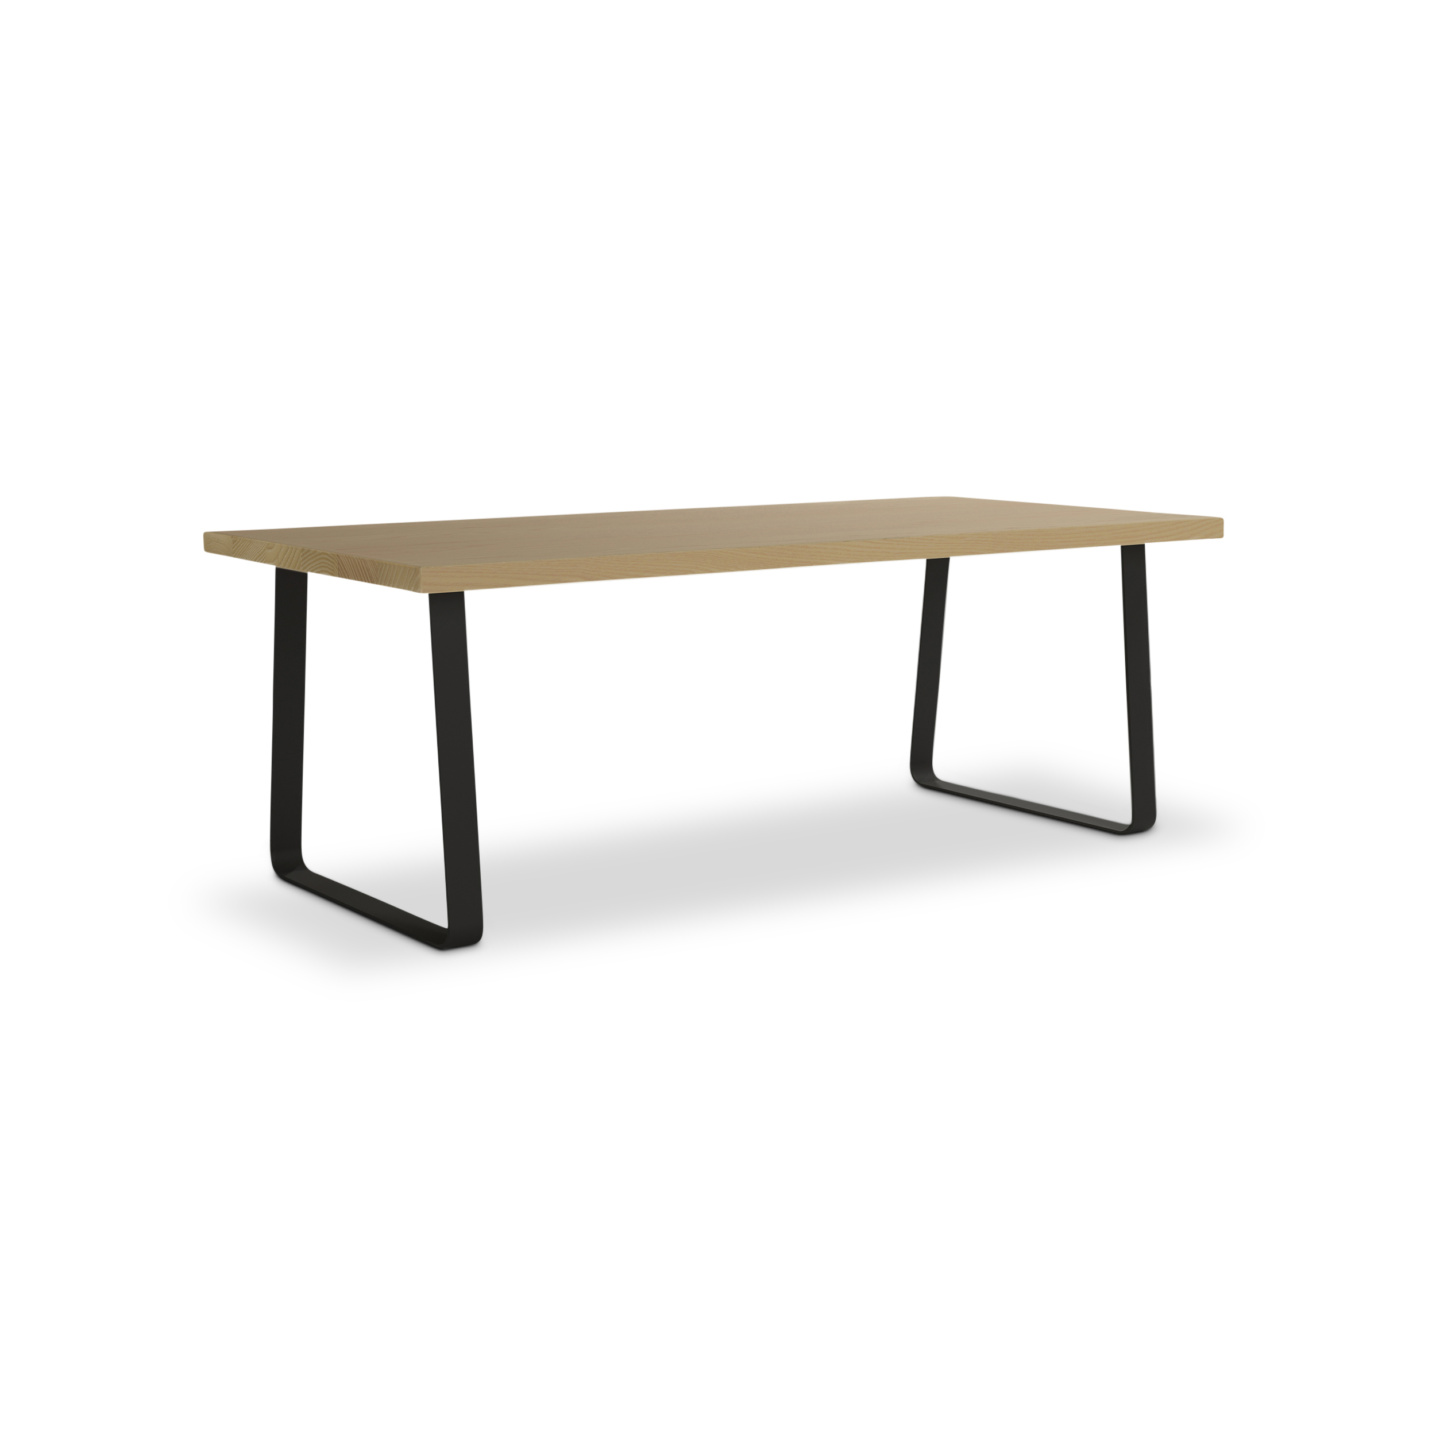 Ash wooden dinning table with metal legs